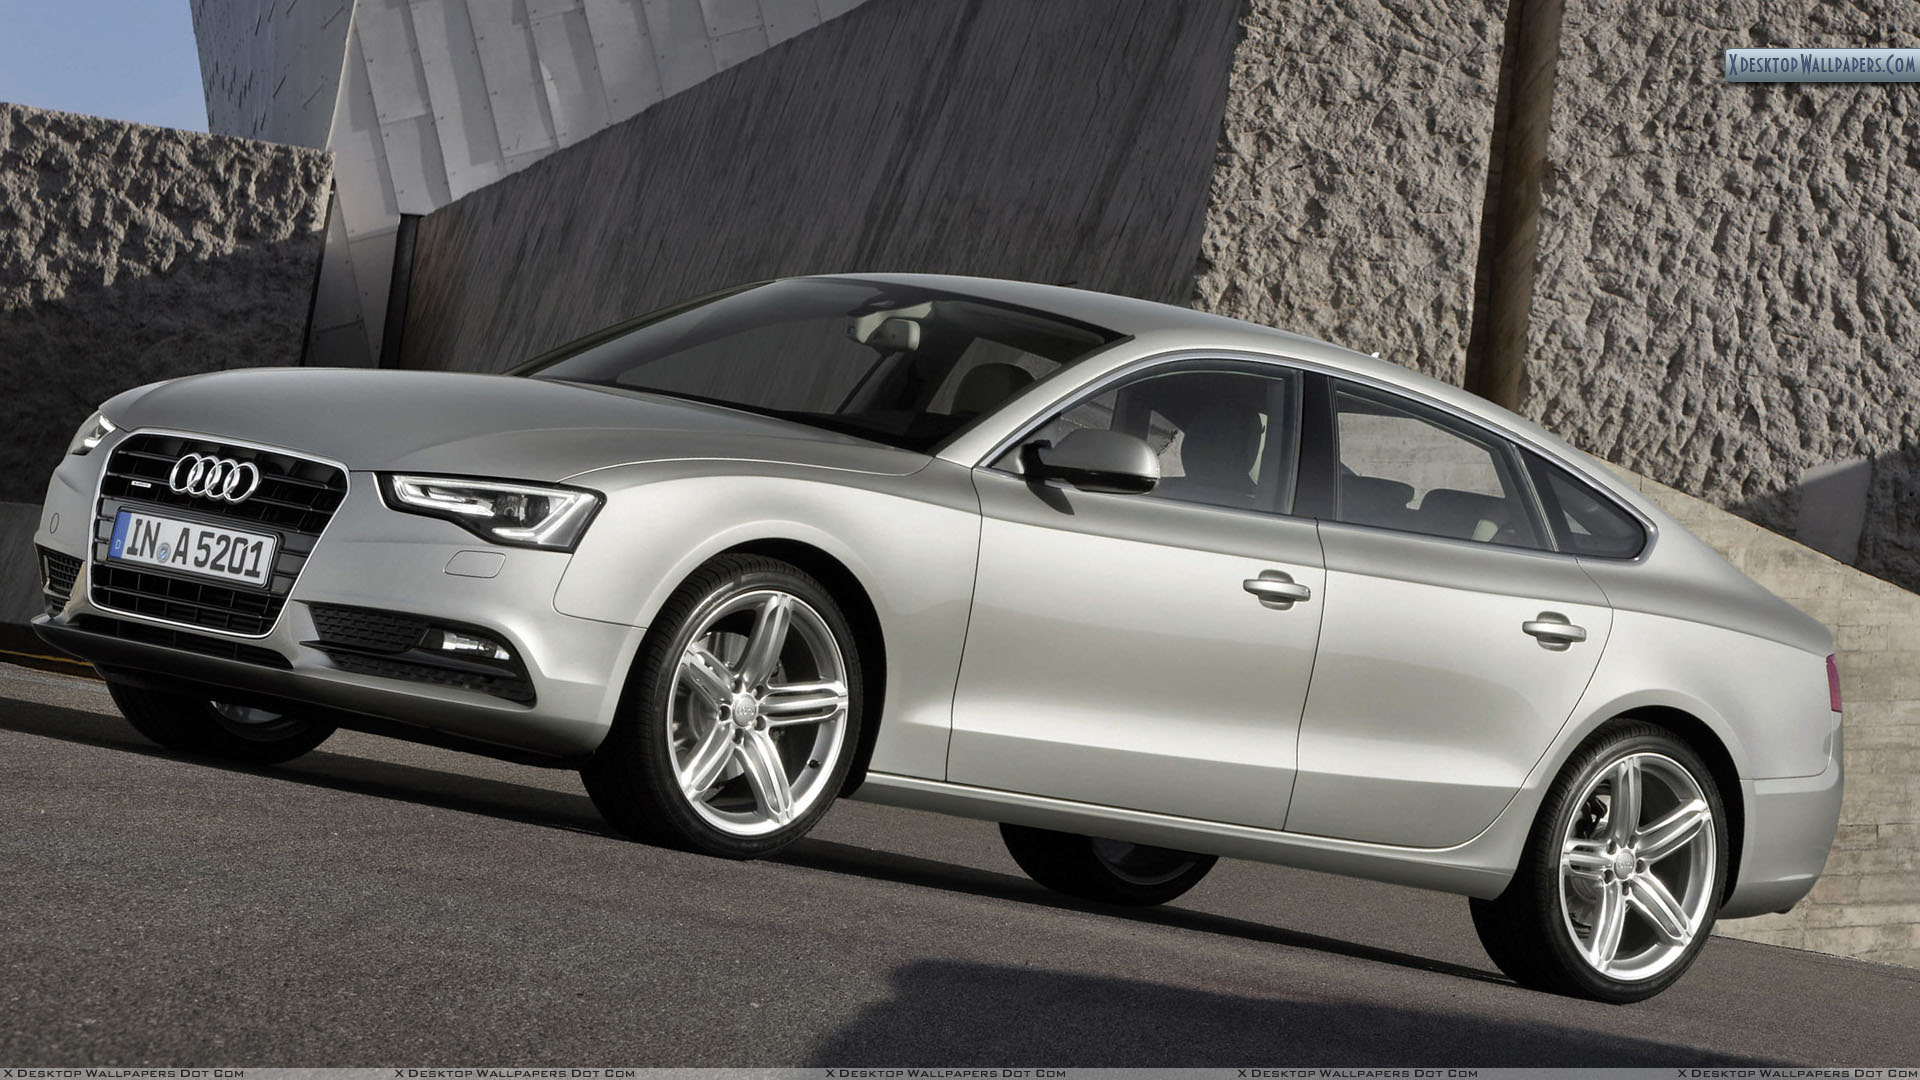 audi a5 sportback 2012 comodidad ergonom a y lujo lista de carros. Black Bedroom Furniture Sets. Home Design Ideas